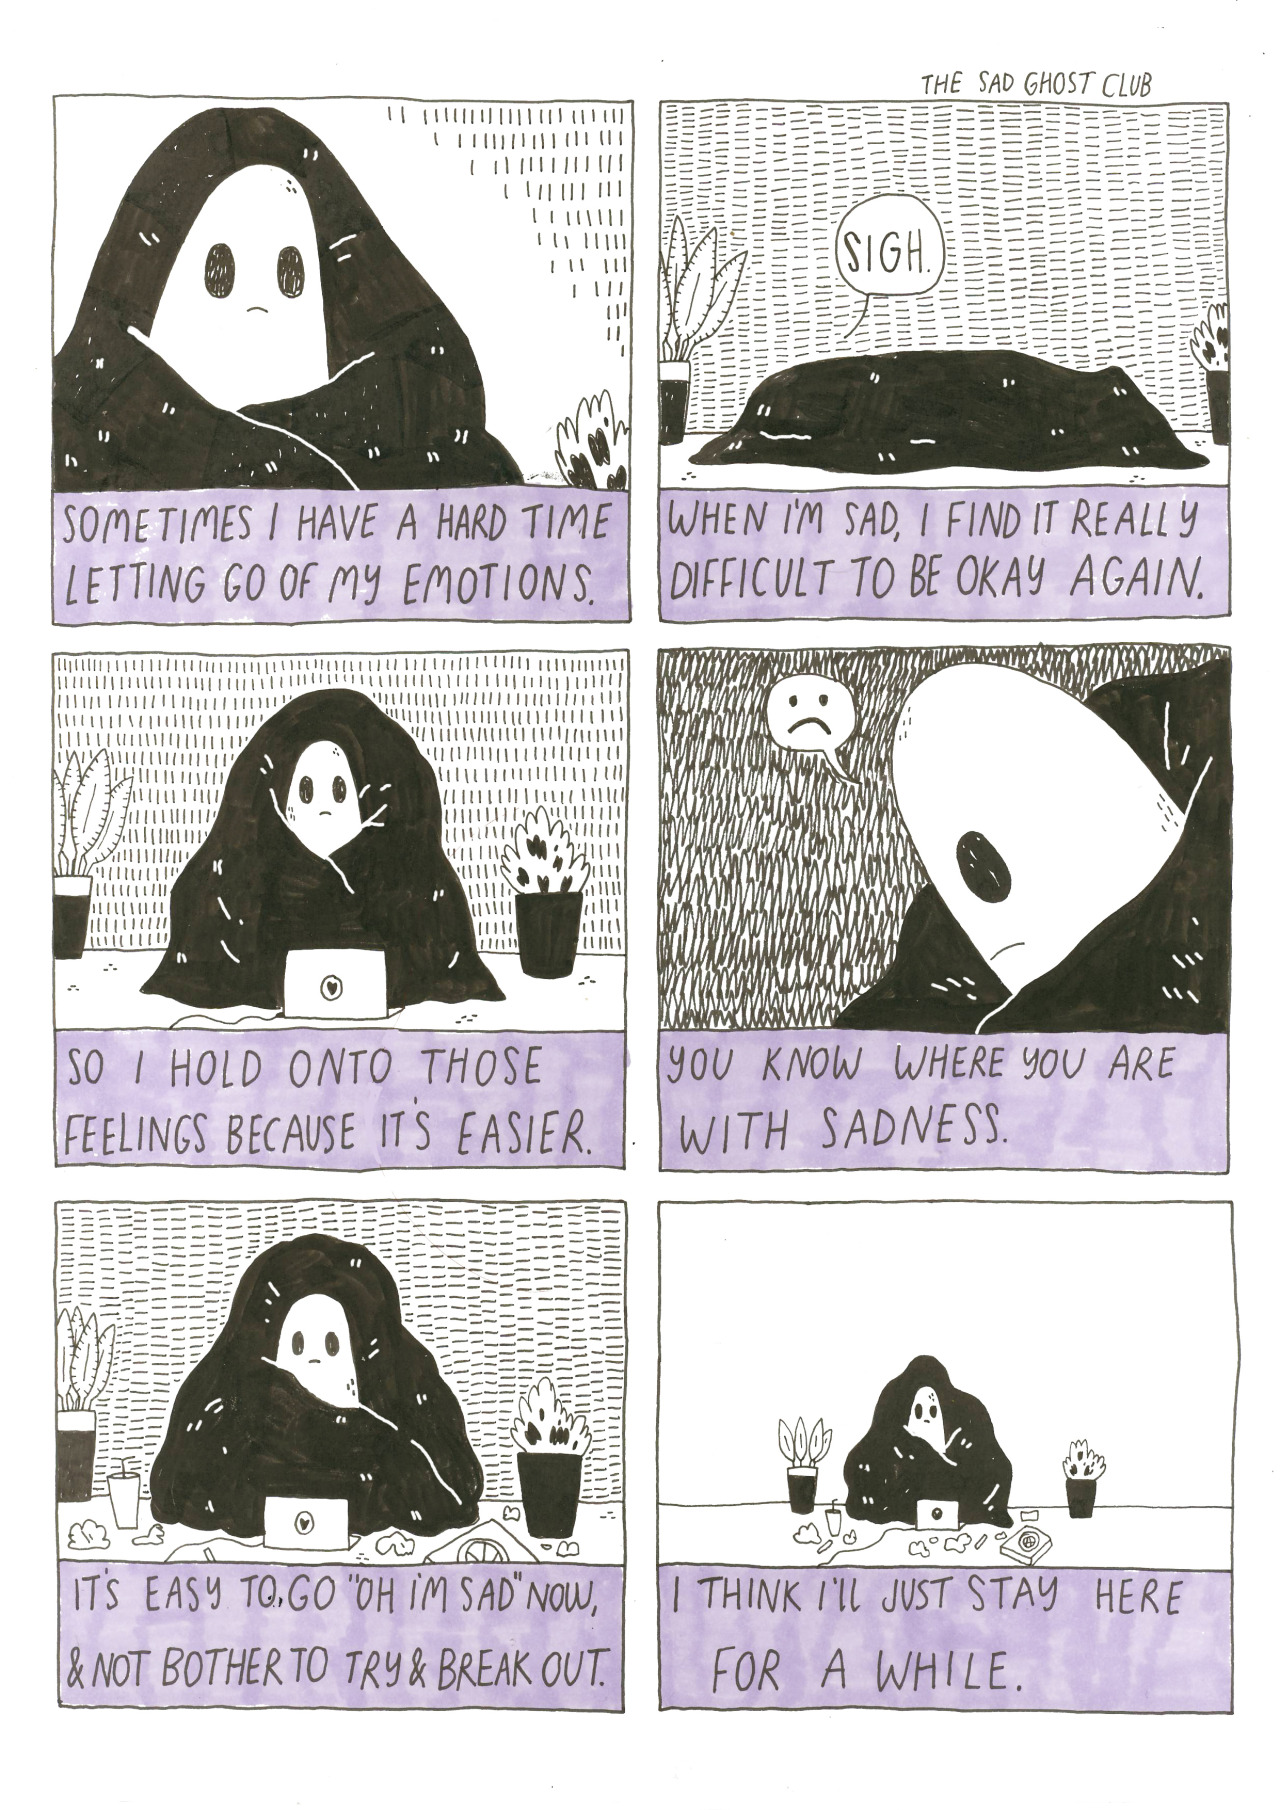 imaginative web comics: sad ghost club